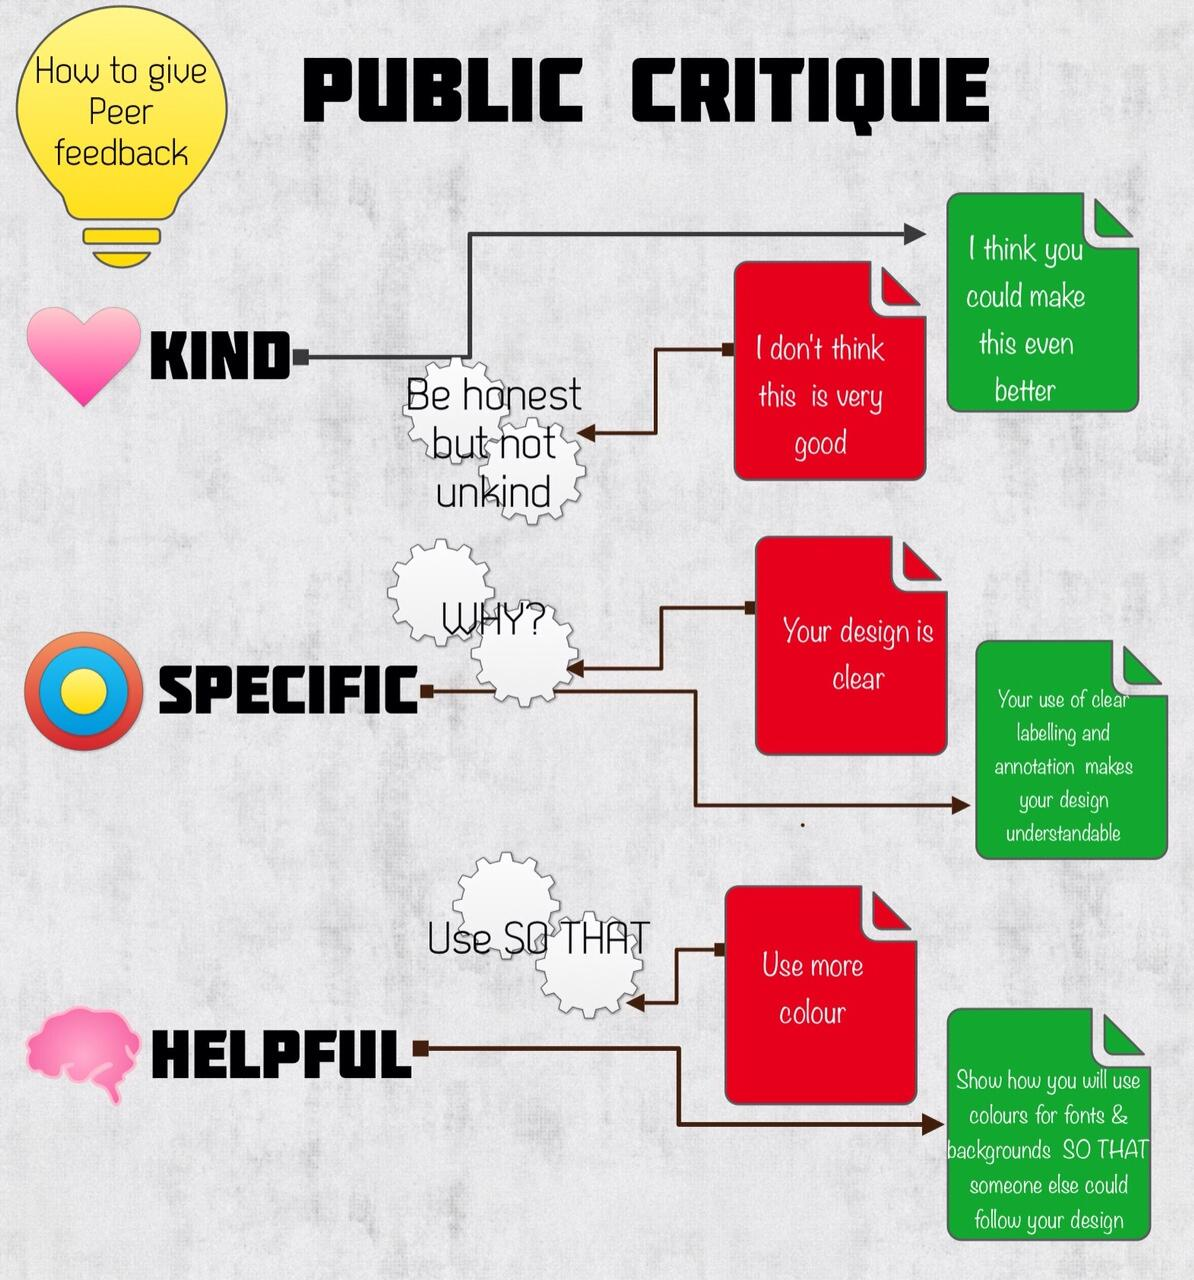 Introducing public critique to Y8 using @gripweed1 's excellent infographic. #pedagoofriday http://t.co/8rtgpgajkE